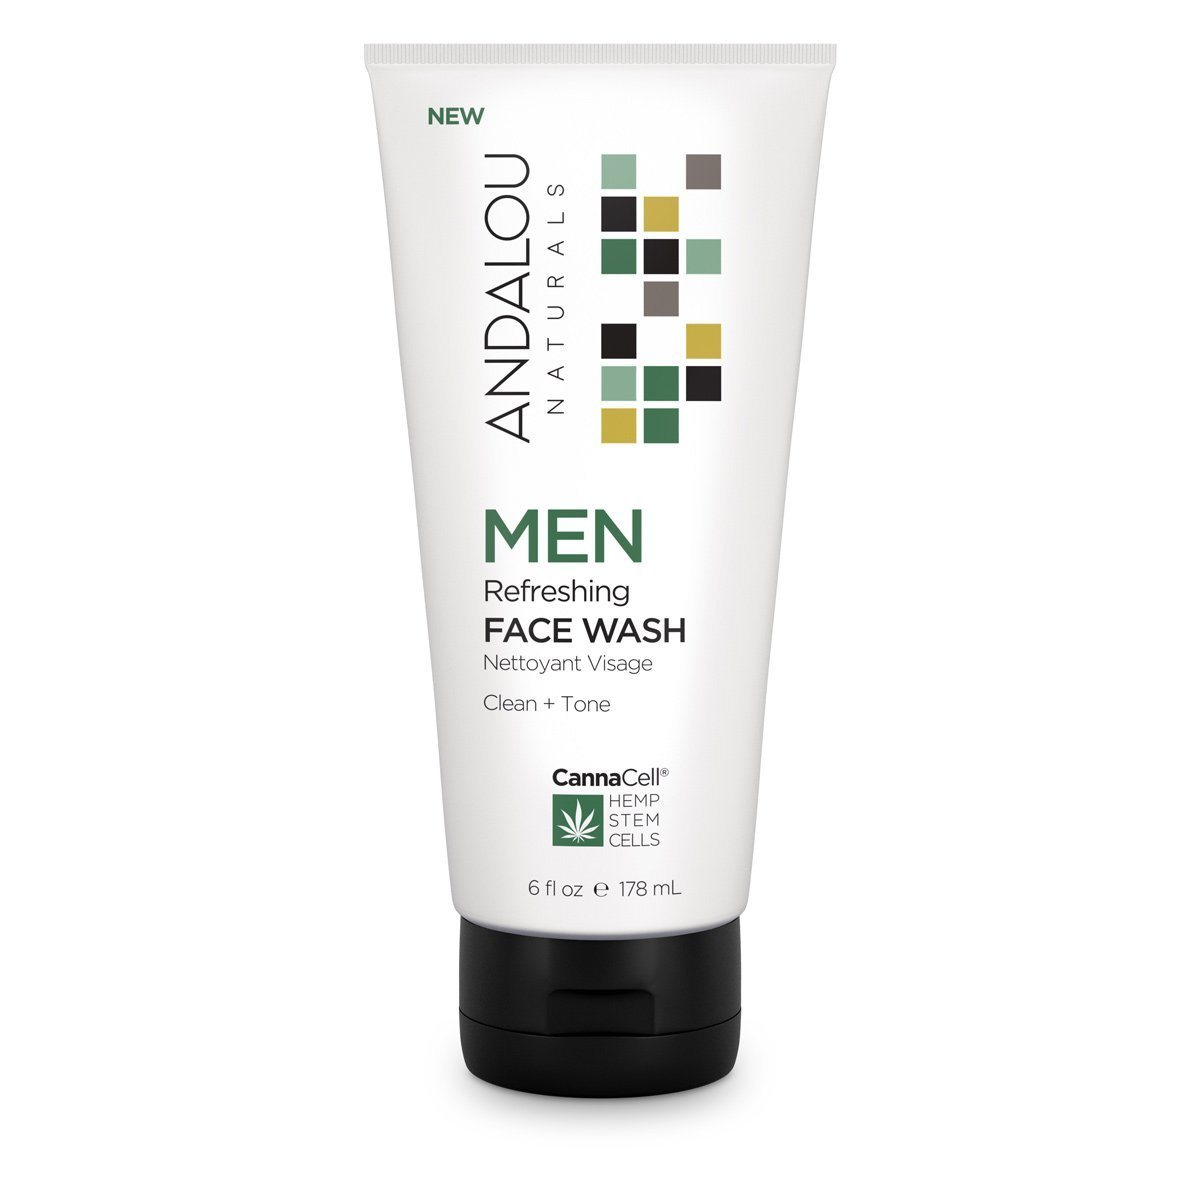 Personal Care - Andalou Naturals - Men's Refreshing Face Wash, 178mL